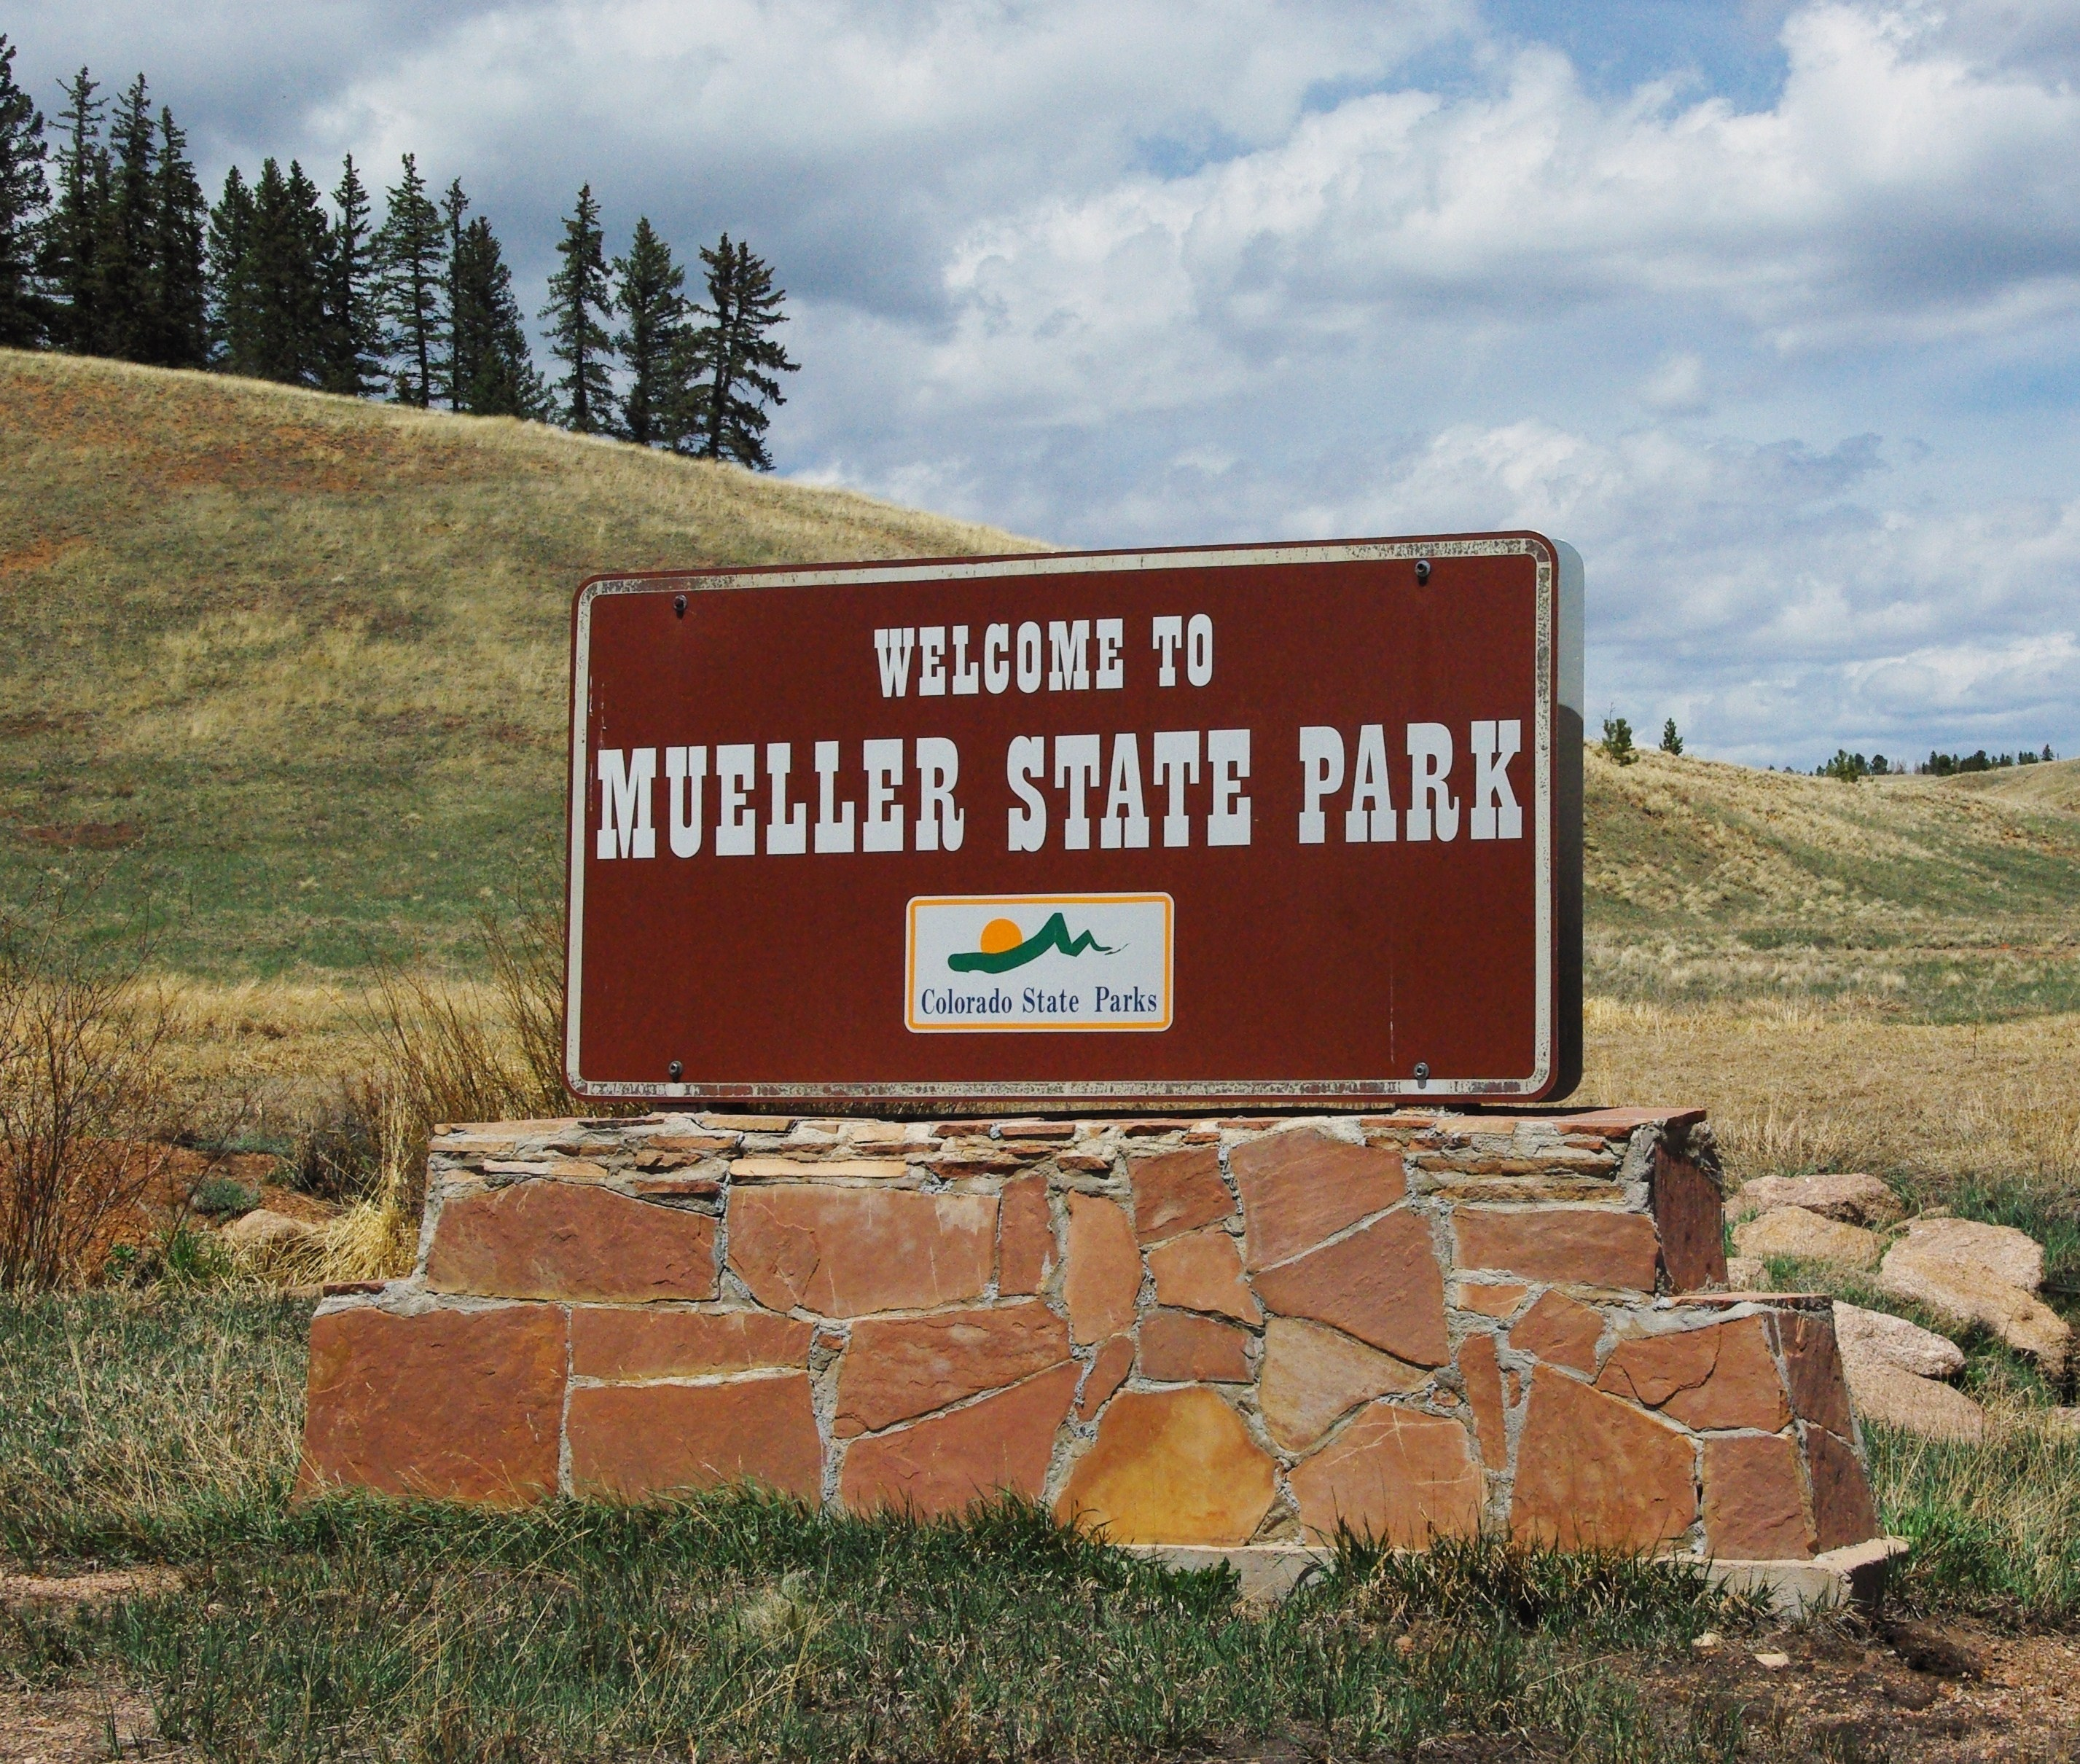 Mueller State Park Camping That Camping Feeling Blog Series